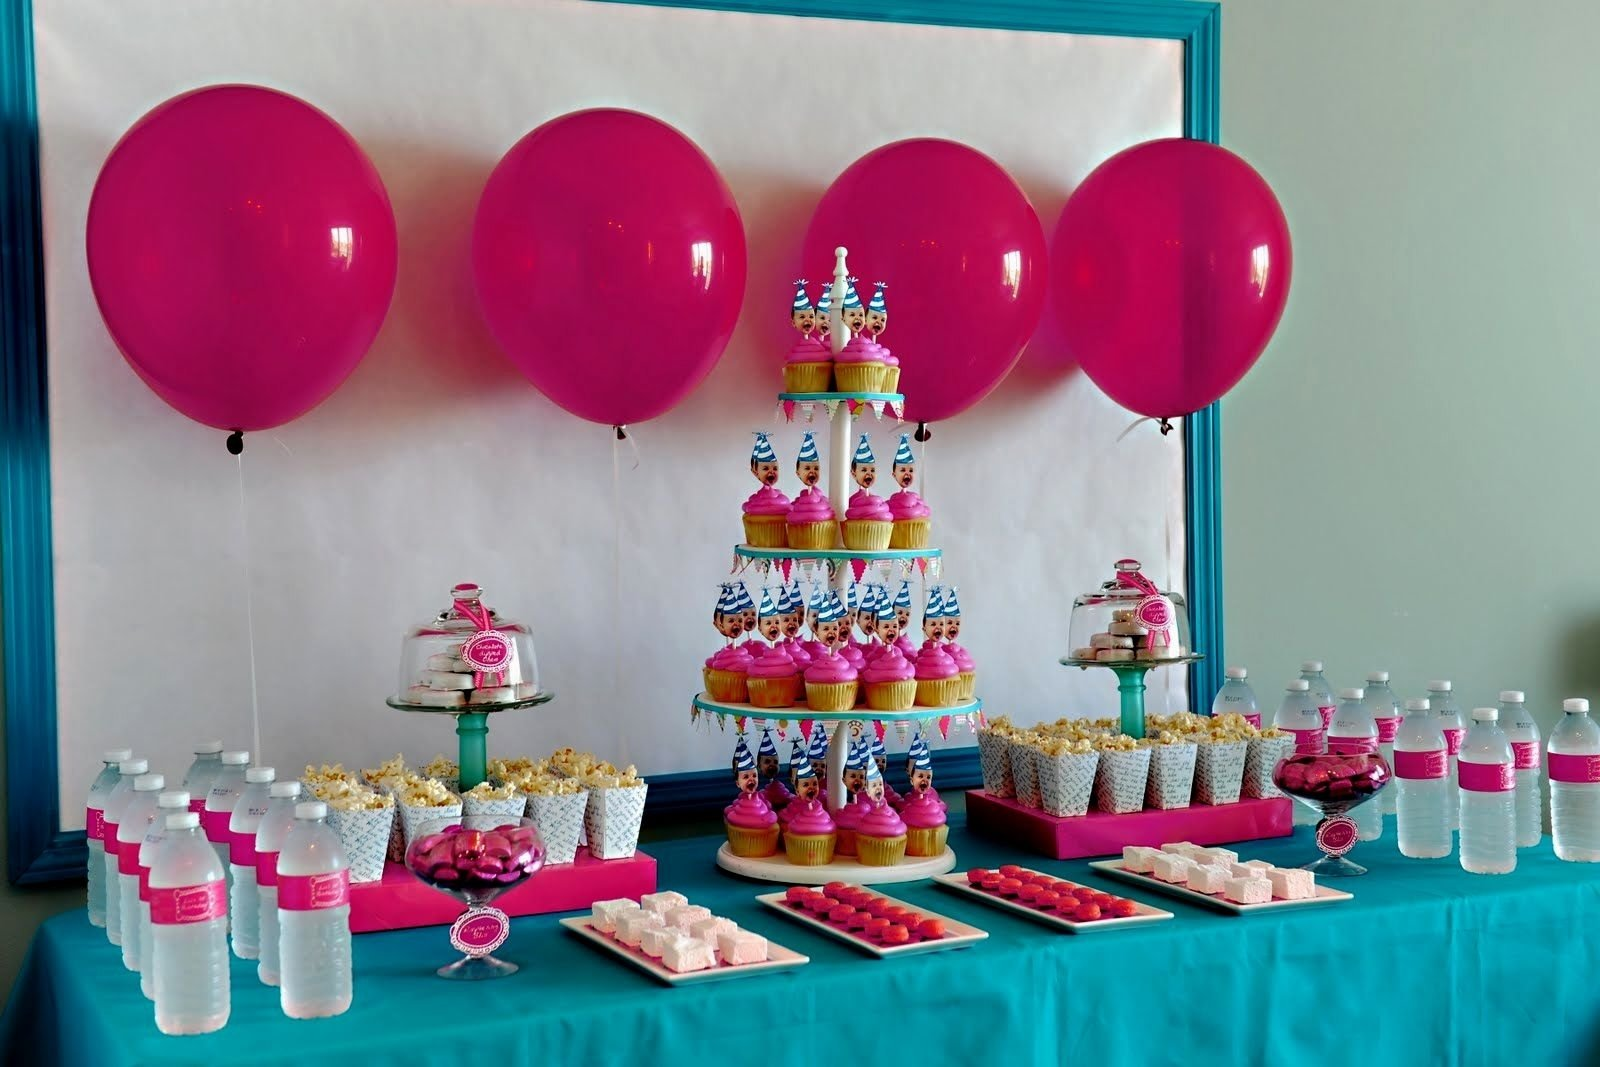 10 Gorgeous 5 Year Old Girl Birthday Party Ideas 1st birthday party ideas for girl the minimalist nyc 2 2020